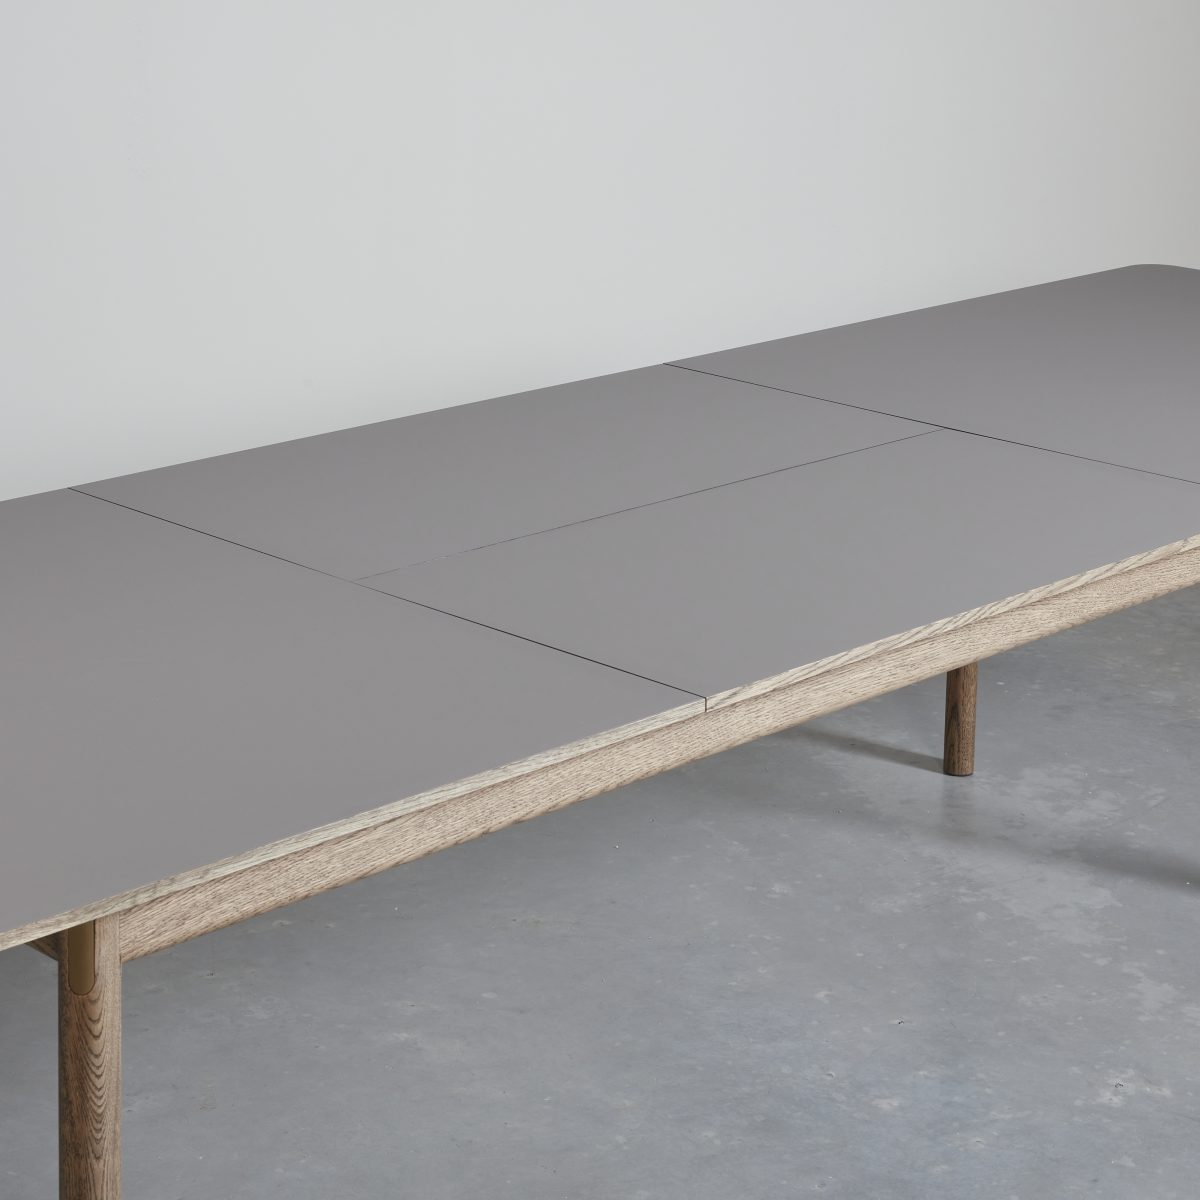 Patch Table